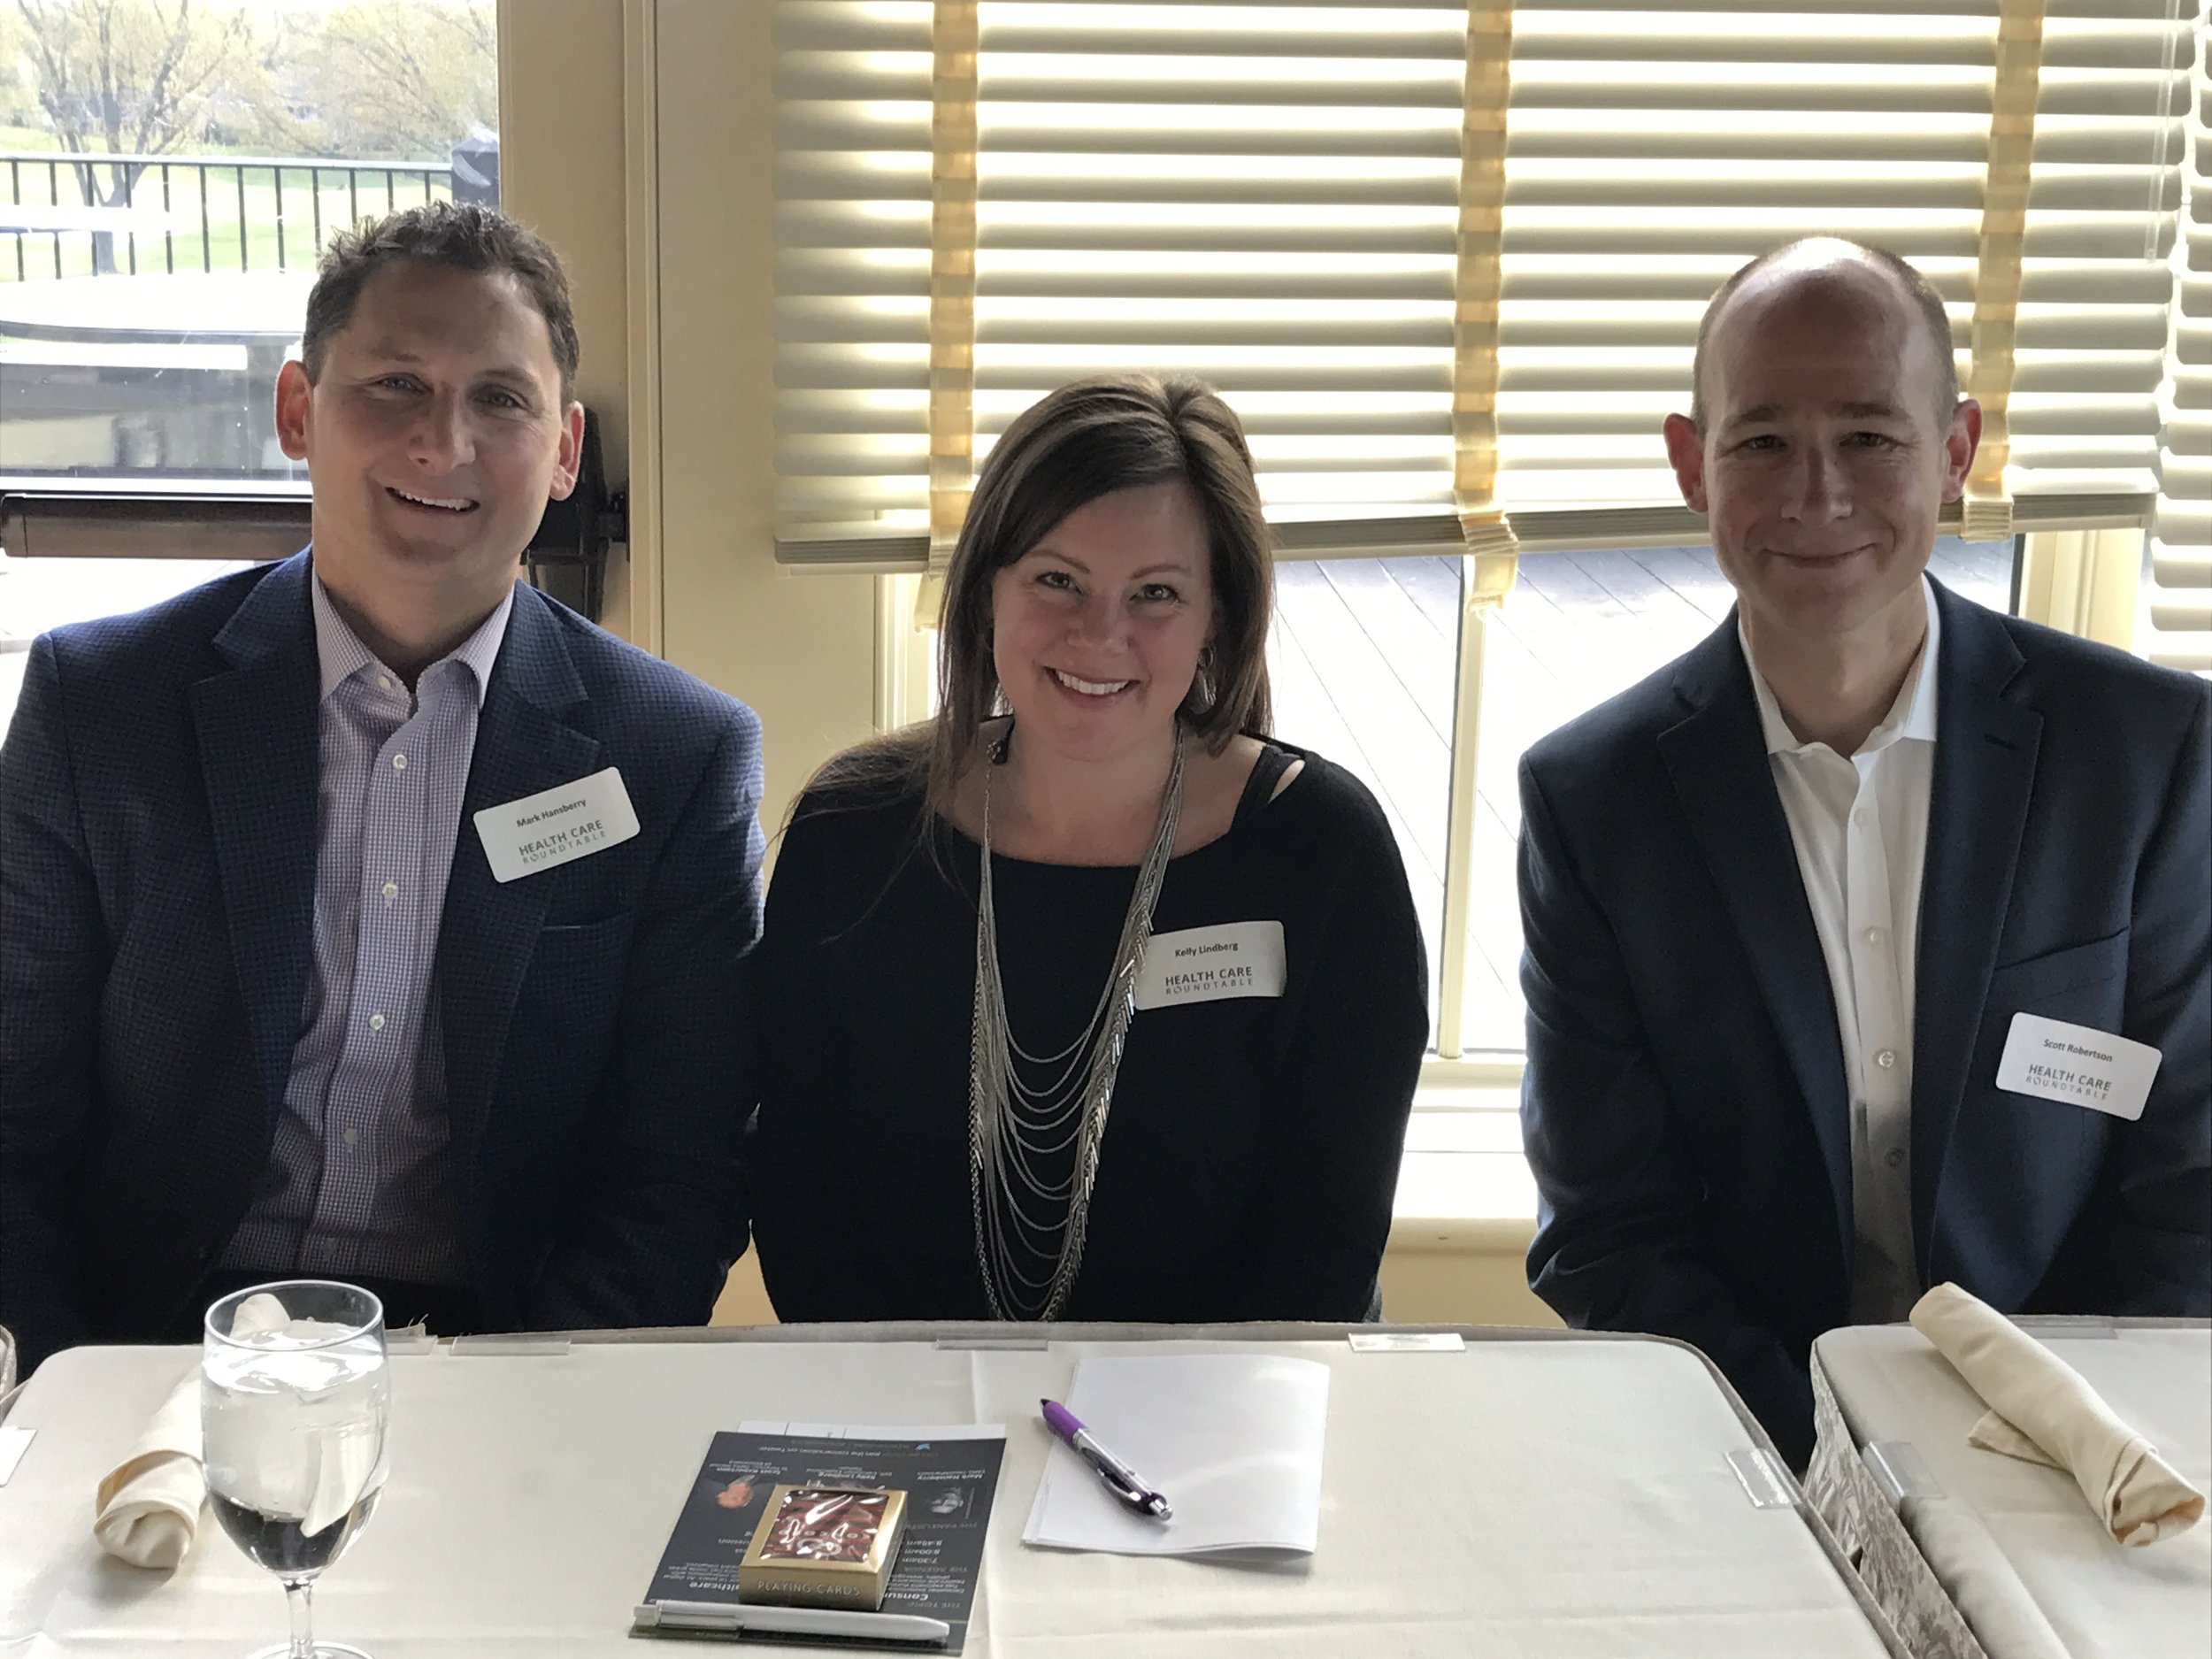 Panelists from L to R:Mark Hansberry, Kelly Lindberg, and Scott Robertson.